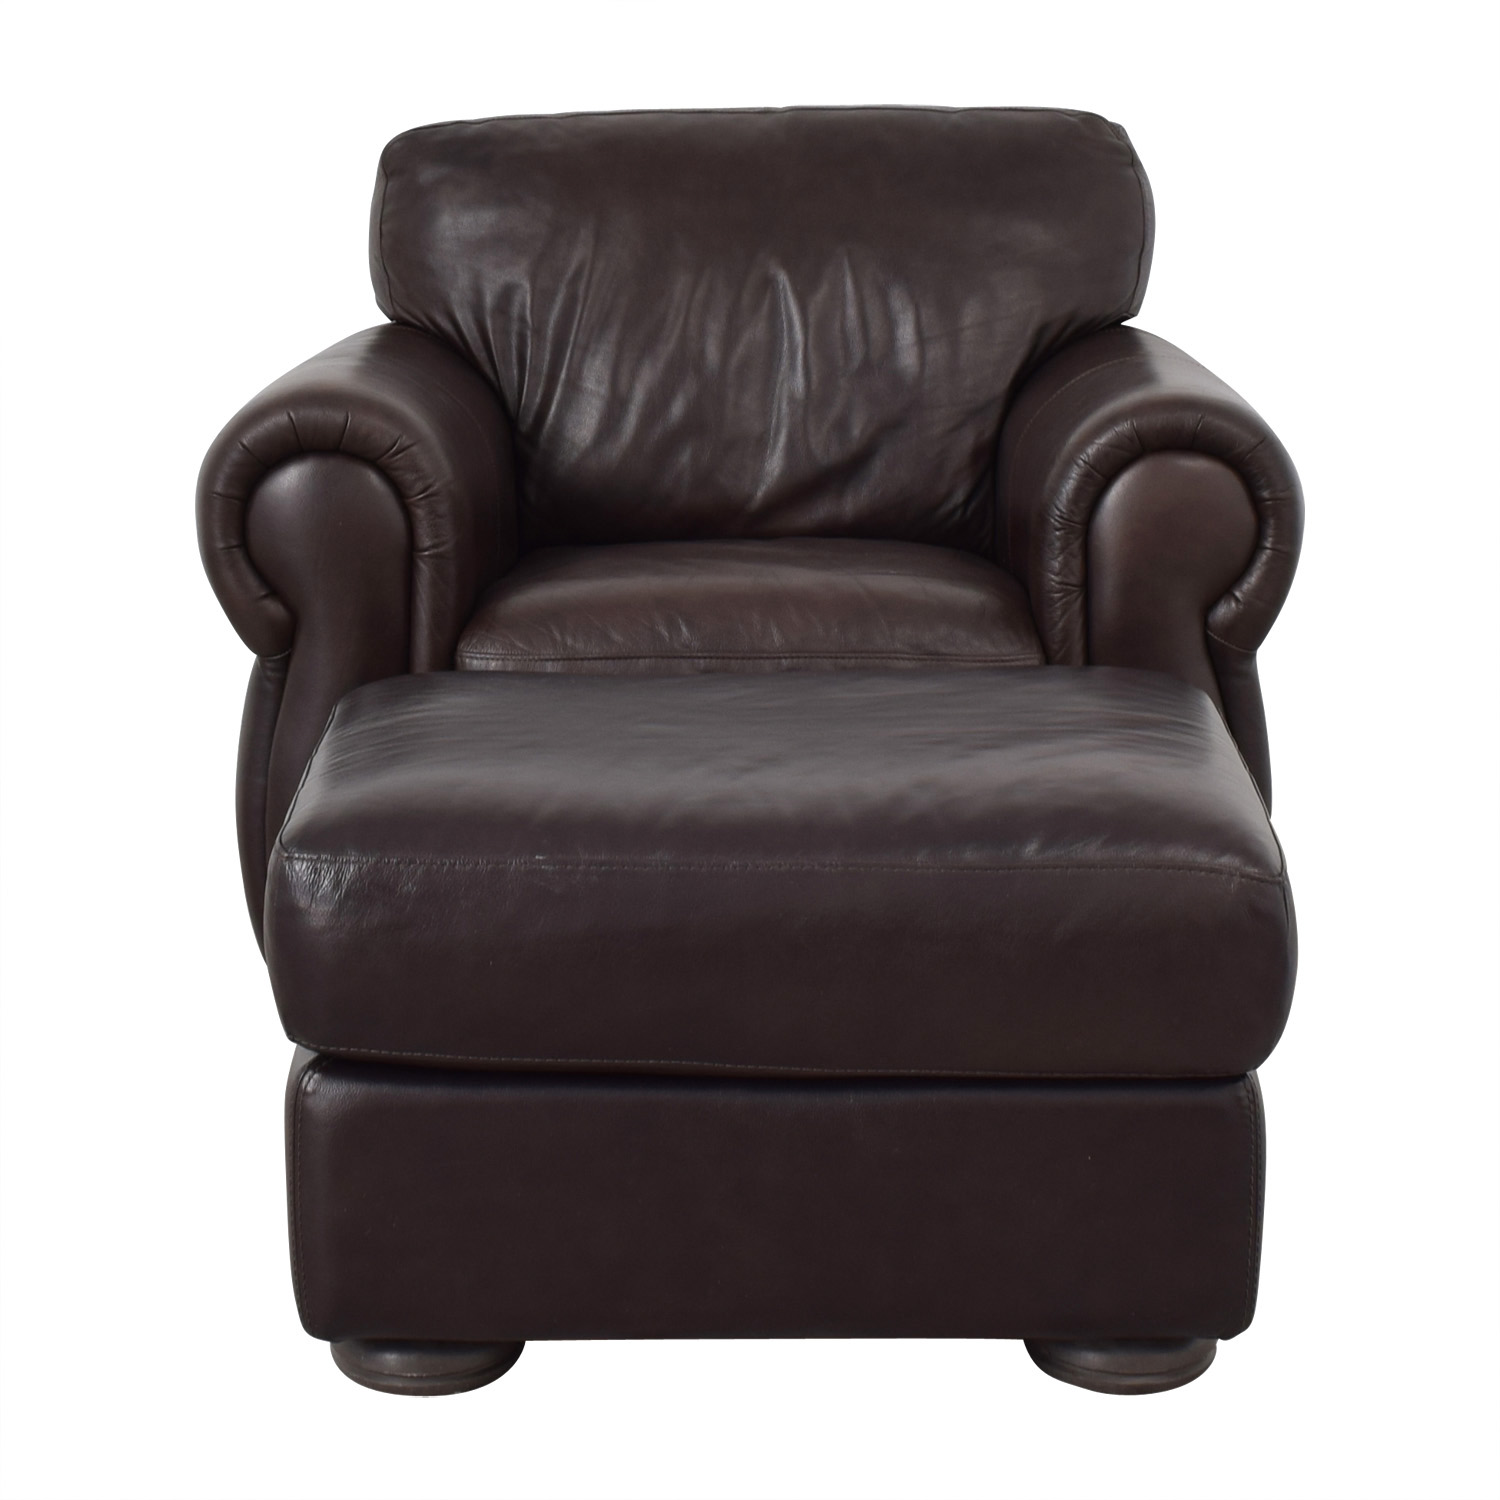 Raymour & Flanigan Raymour & Flanigan Brown Accent Chair and Ottoman discount